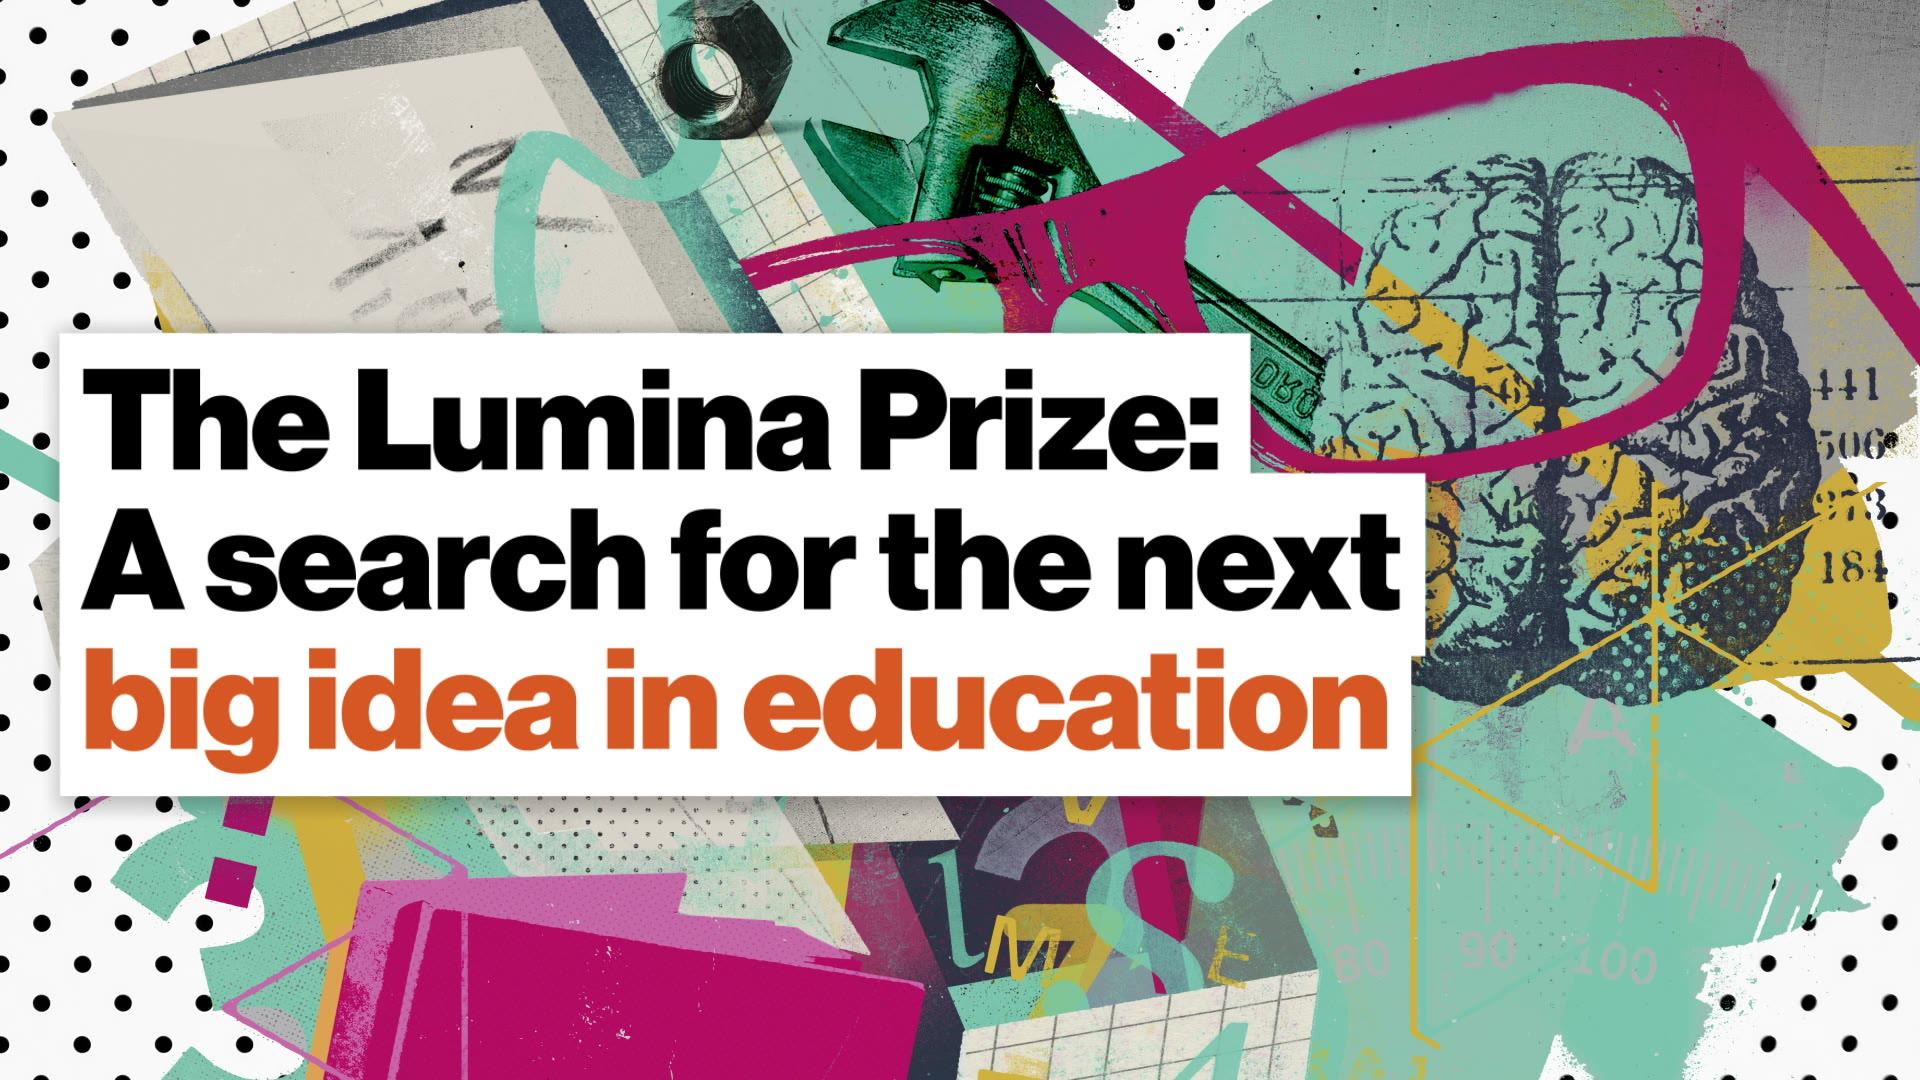 What's the Lumina Prize? You could have the winning idea!